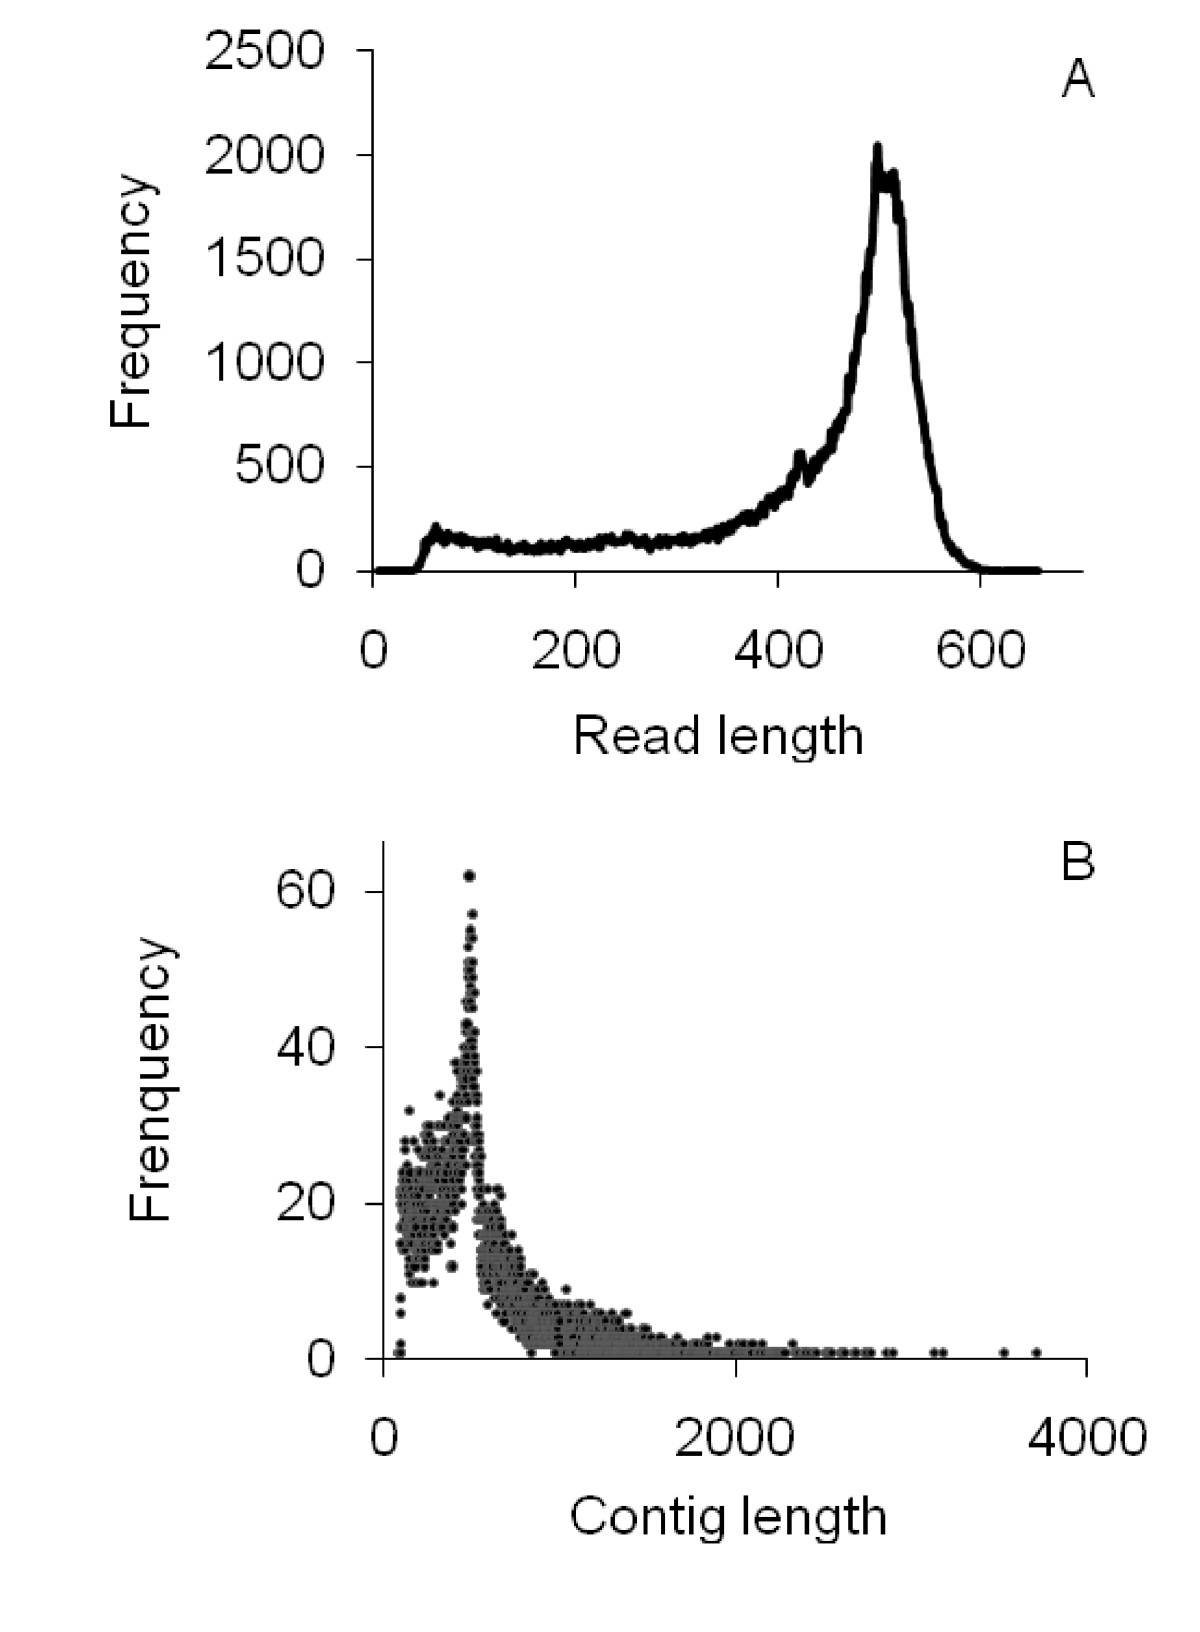 http://static-content.springer.com/image/art%3A10.1186%2F1471-2164-11-262/MediaObjects/12864_2009_Article_2856_Fig2_HTML.jpg